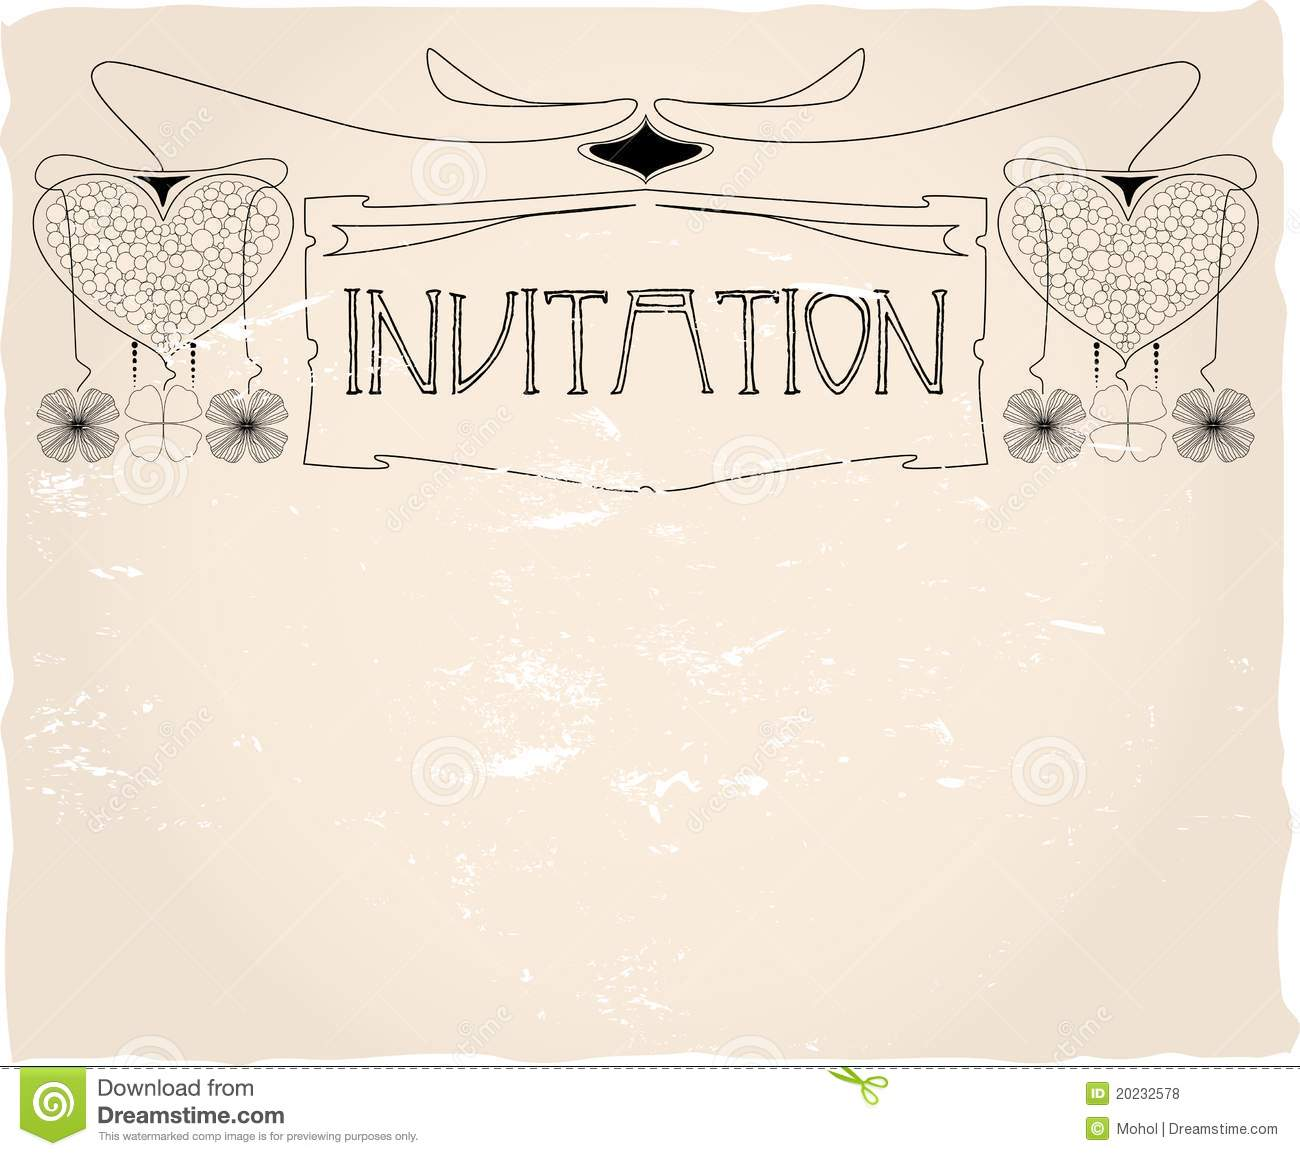 Invitation Template Royalty Free Photos Image 20232578 – Templates for Invitation